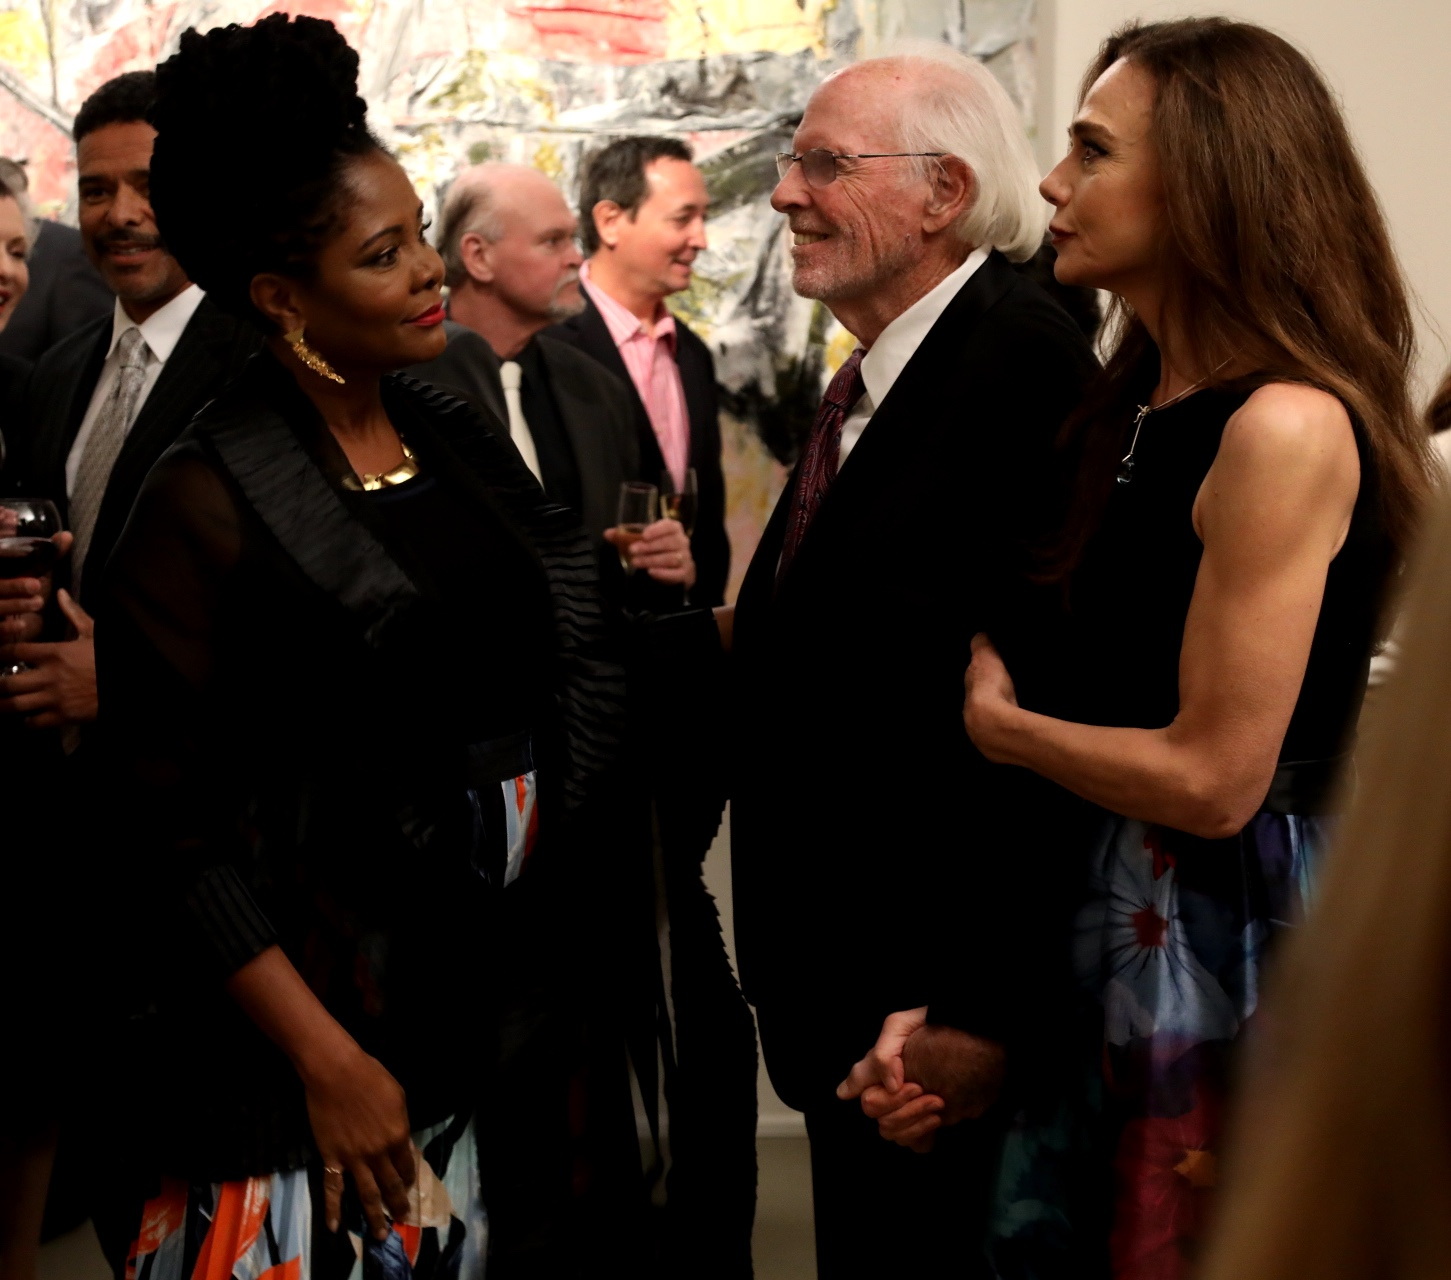 Liza (Tonya Pinkins) greets Richard (Bruce Dern) and Claire (Lena Olin) at his art opening at her gallery in THE ARTIST'S WIFE. Photo by Michael Lavine